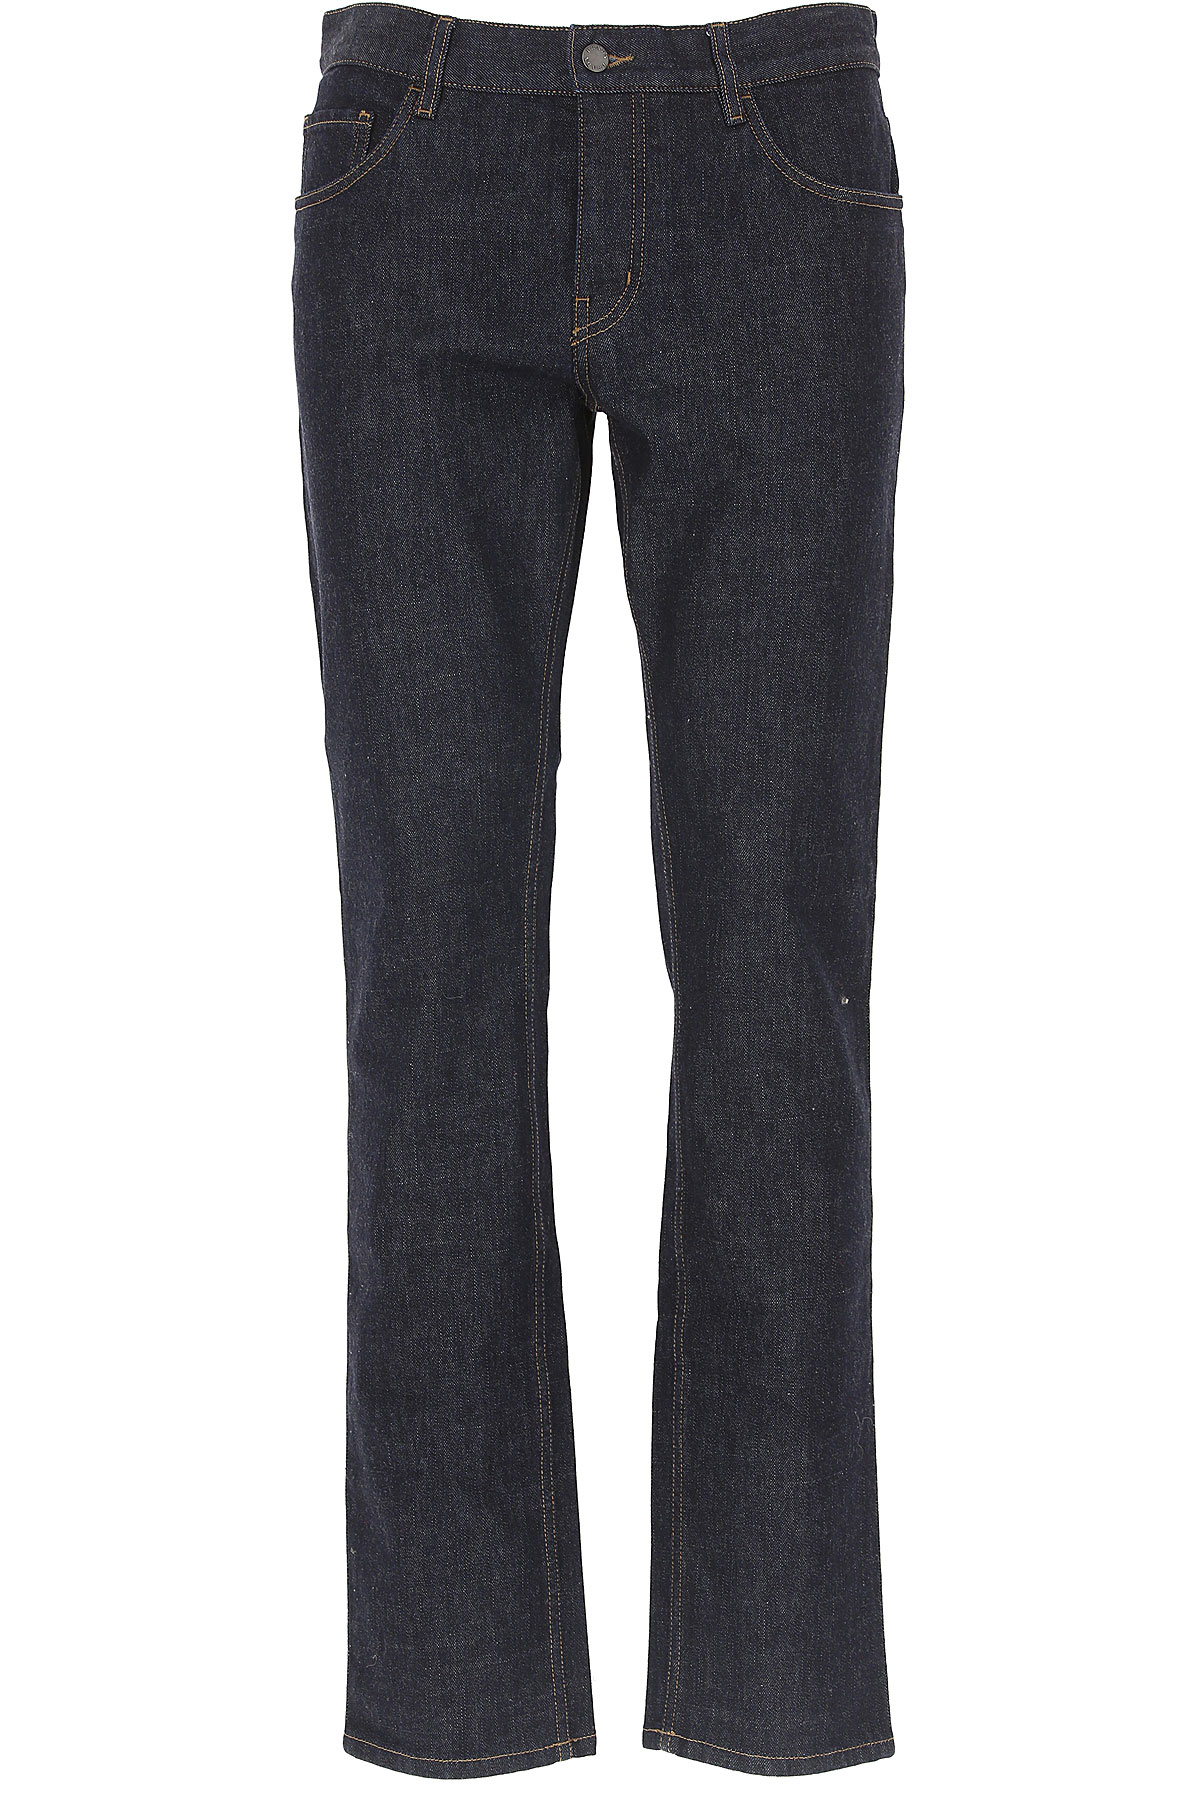 Prada Jeans On Sale in Outlet, Blue, Cotton, 2017, 31 32 33 34